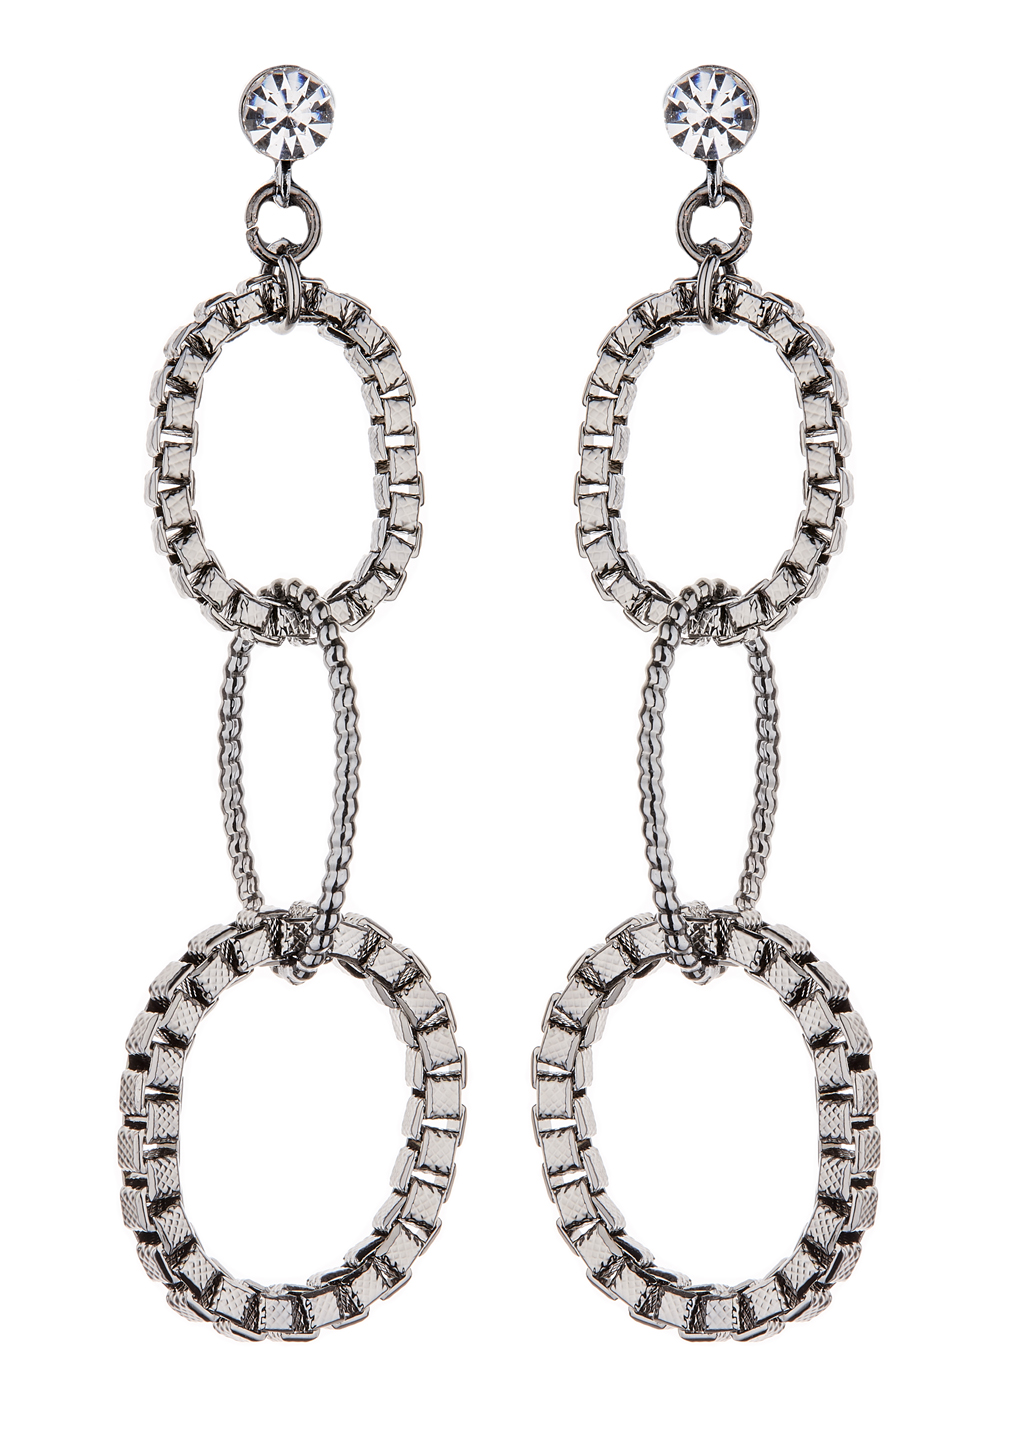 Clip On Earrings - Kaiya GM - gunmetal drop earring with three linked rings